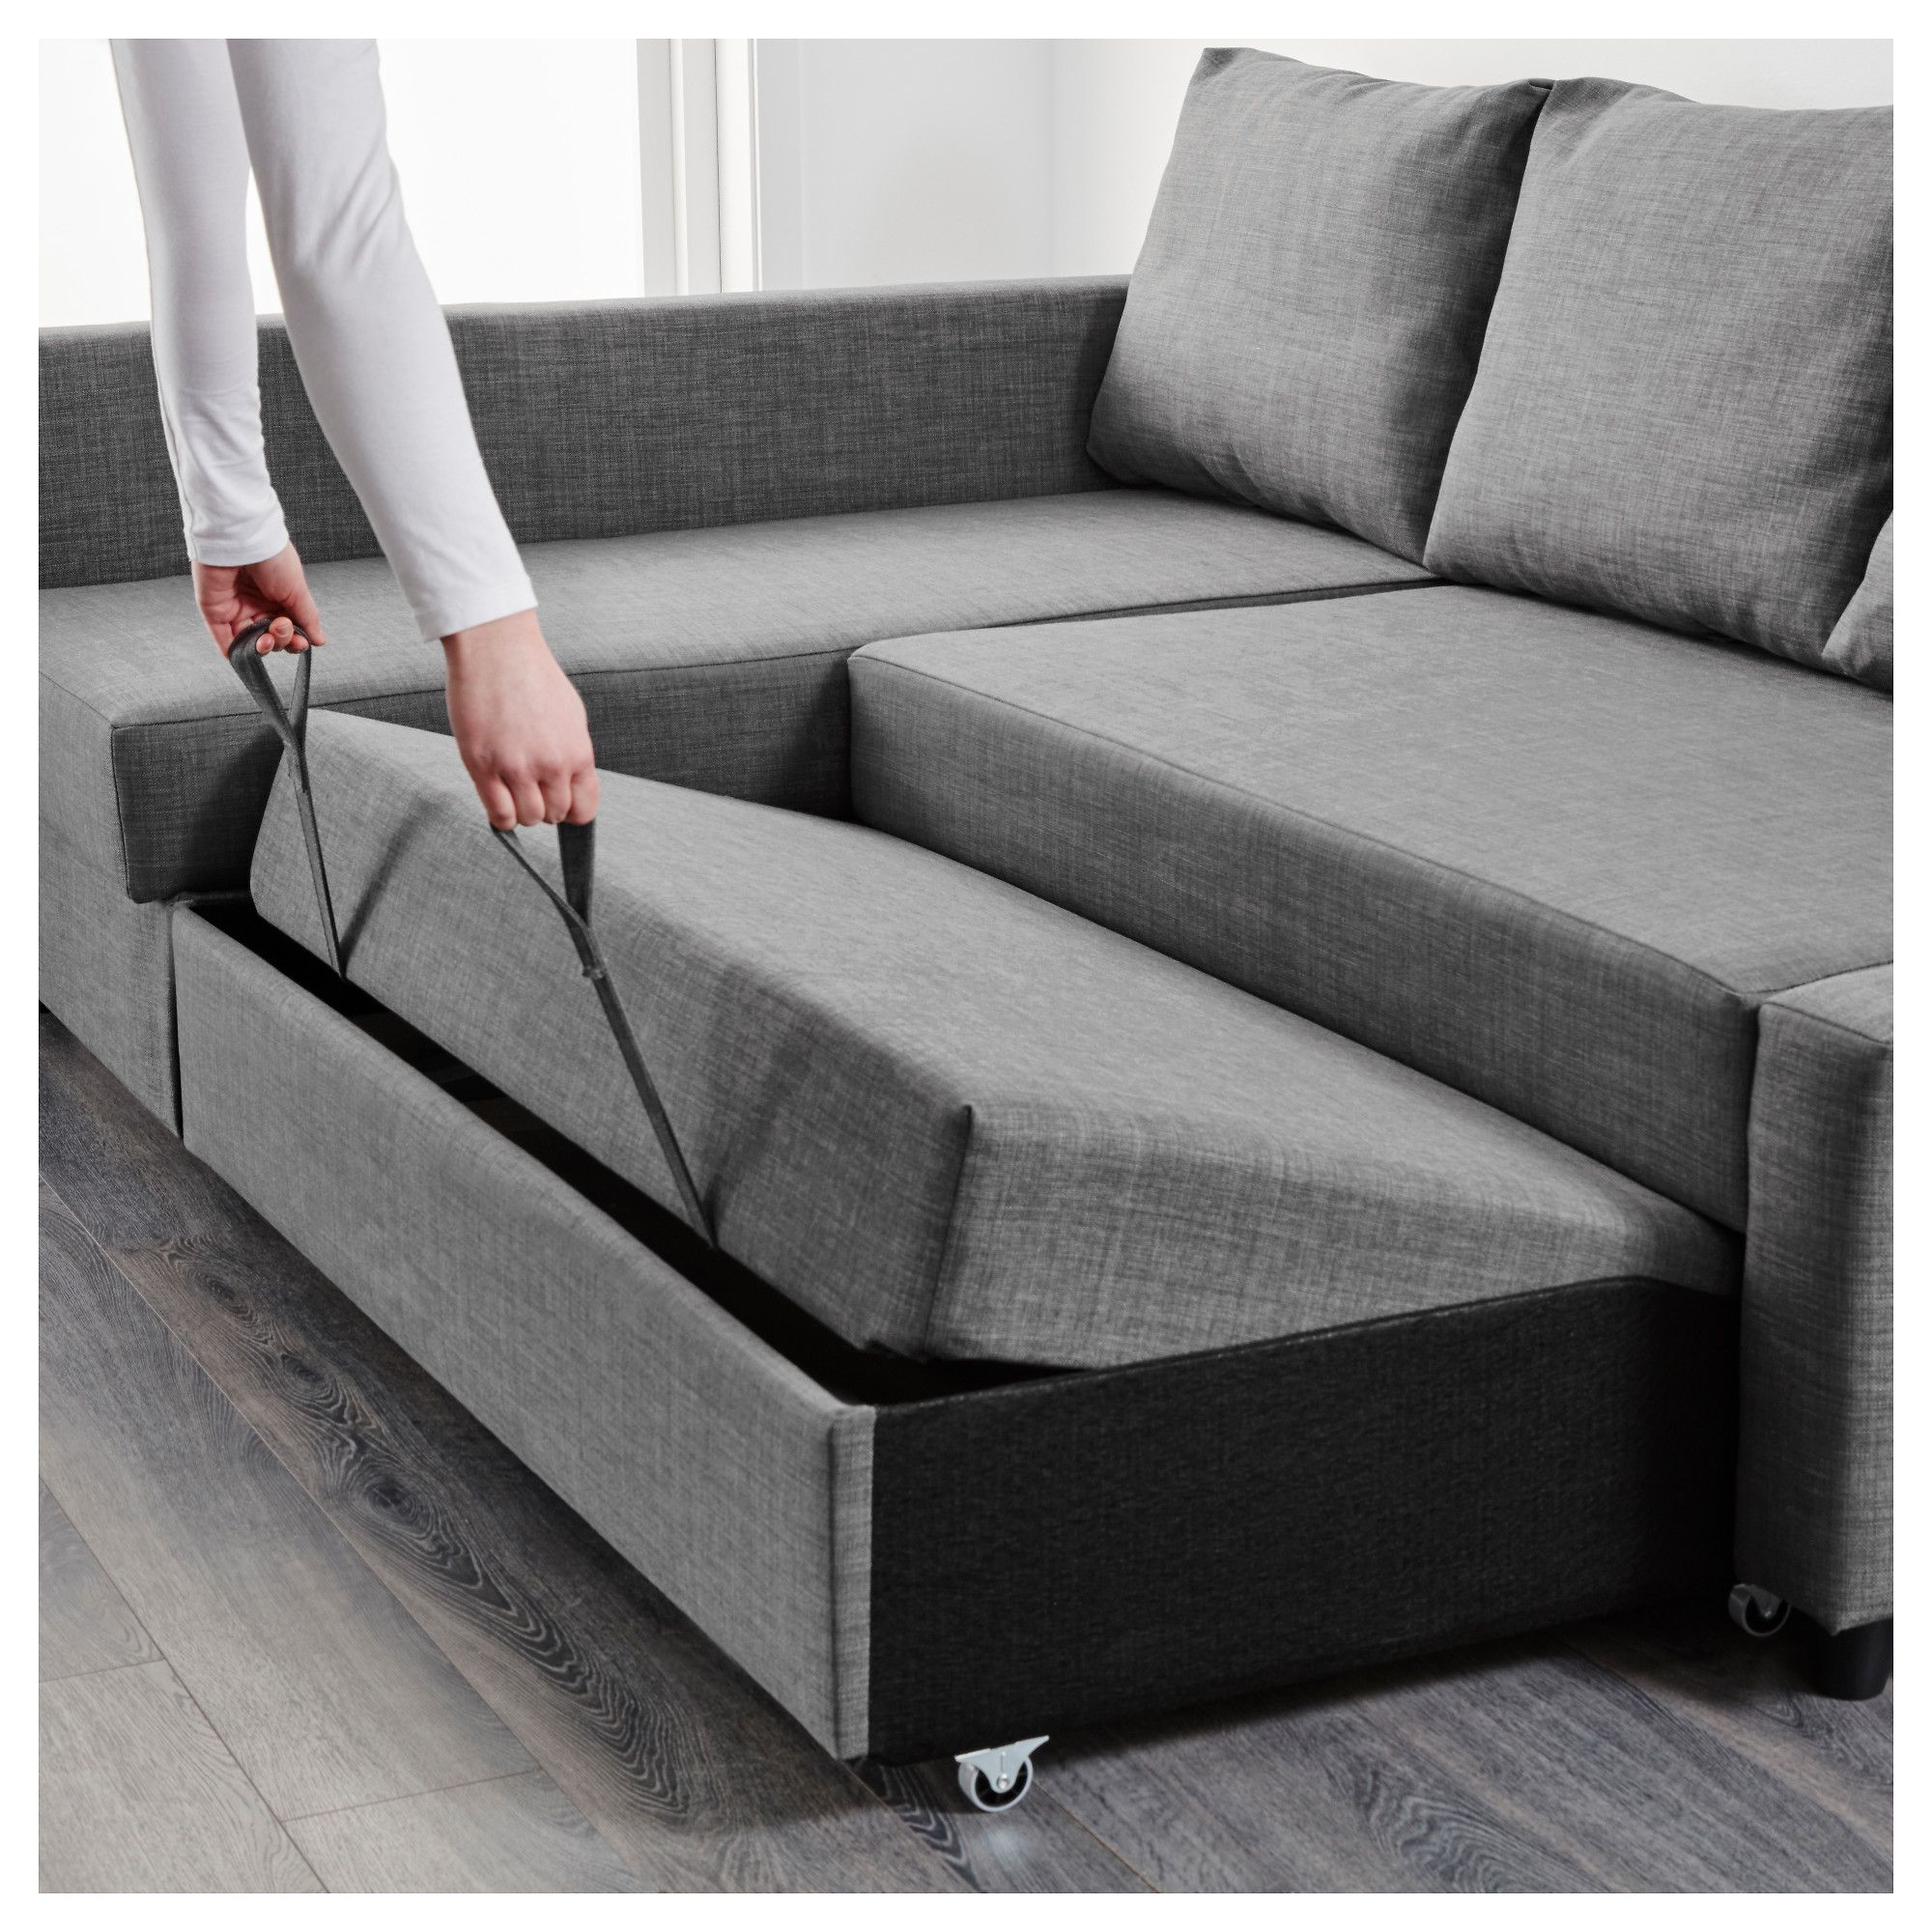 Corner sofa-bed with storage FRIHETEN Skiftebo dark grey | Indoor ...